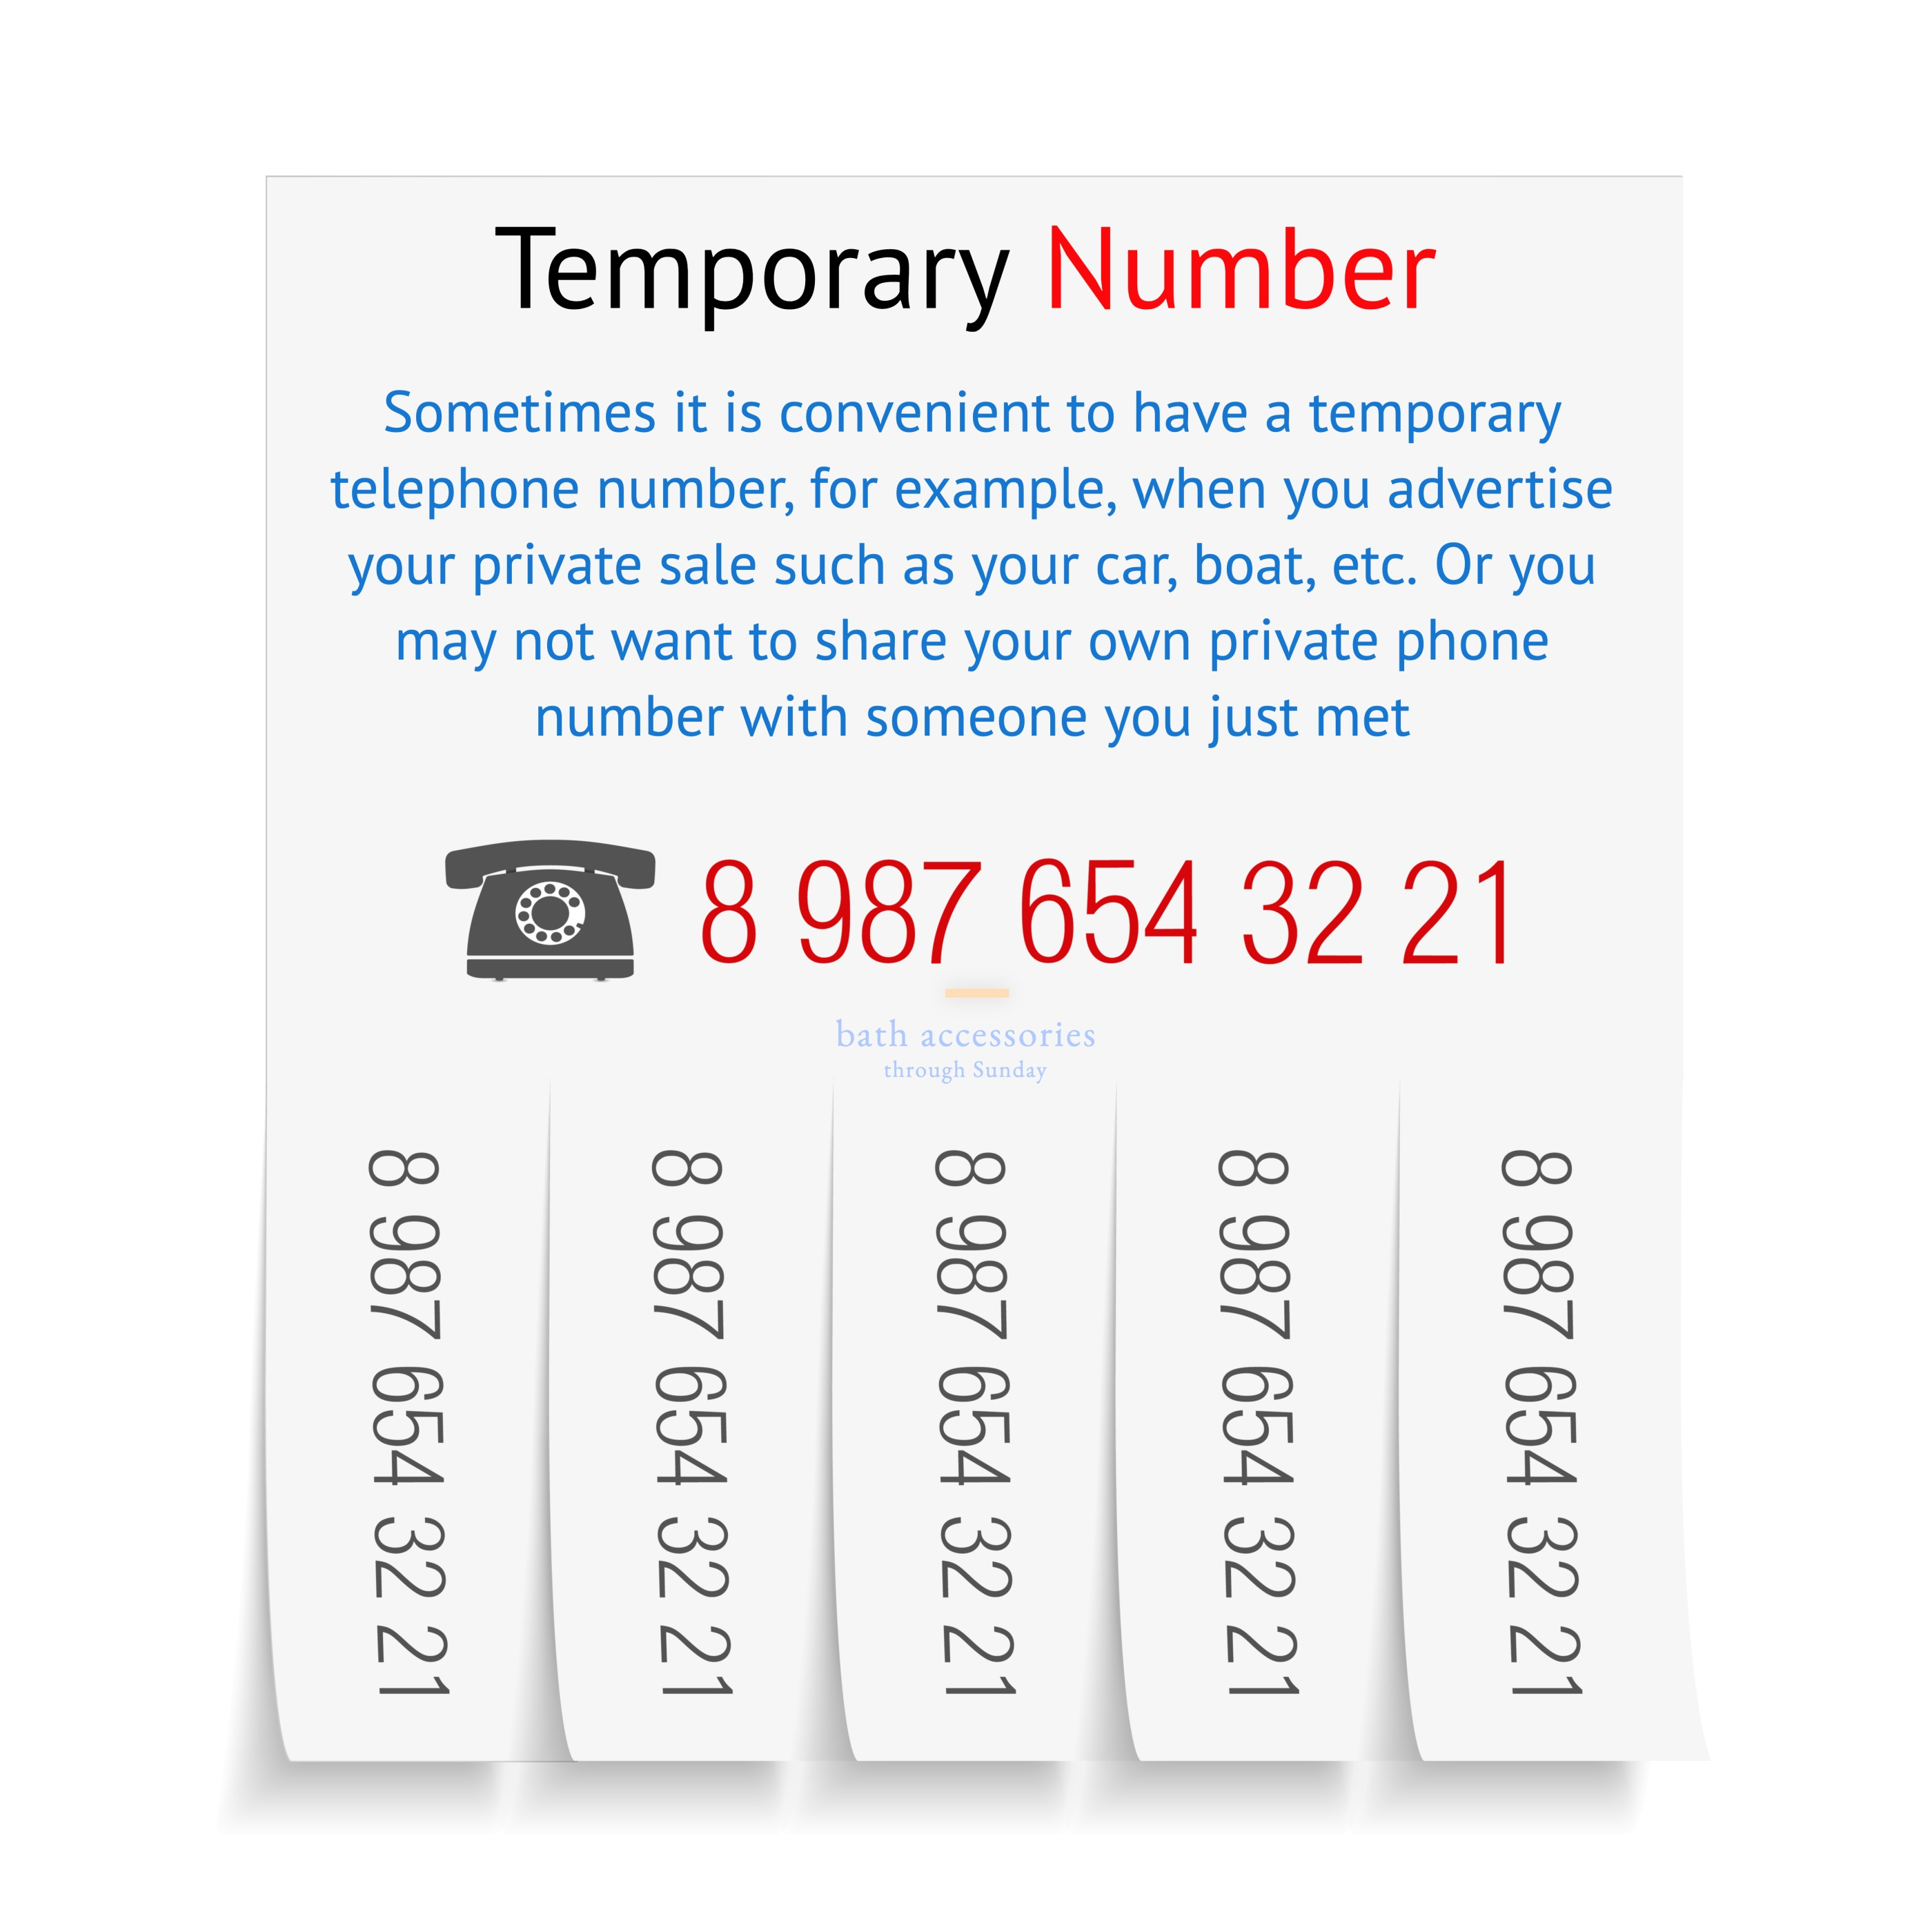 Temporary Number txt